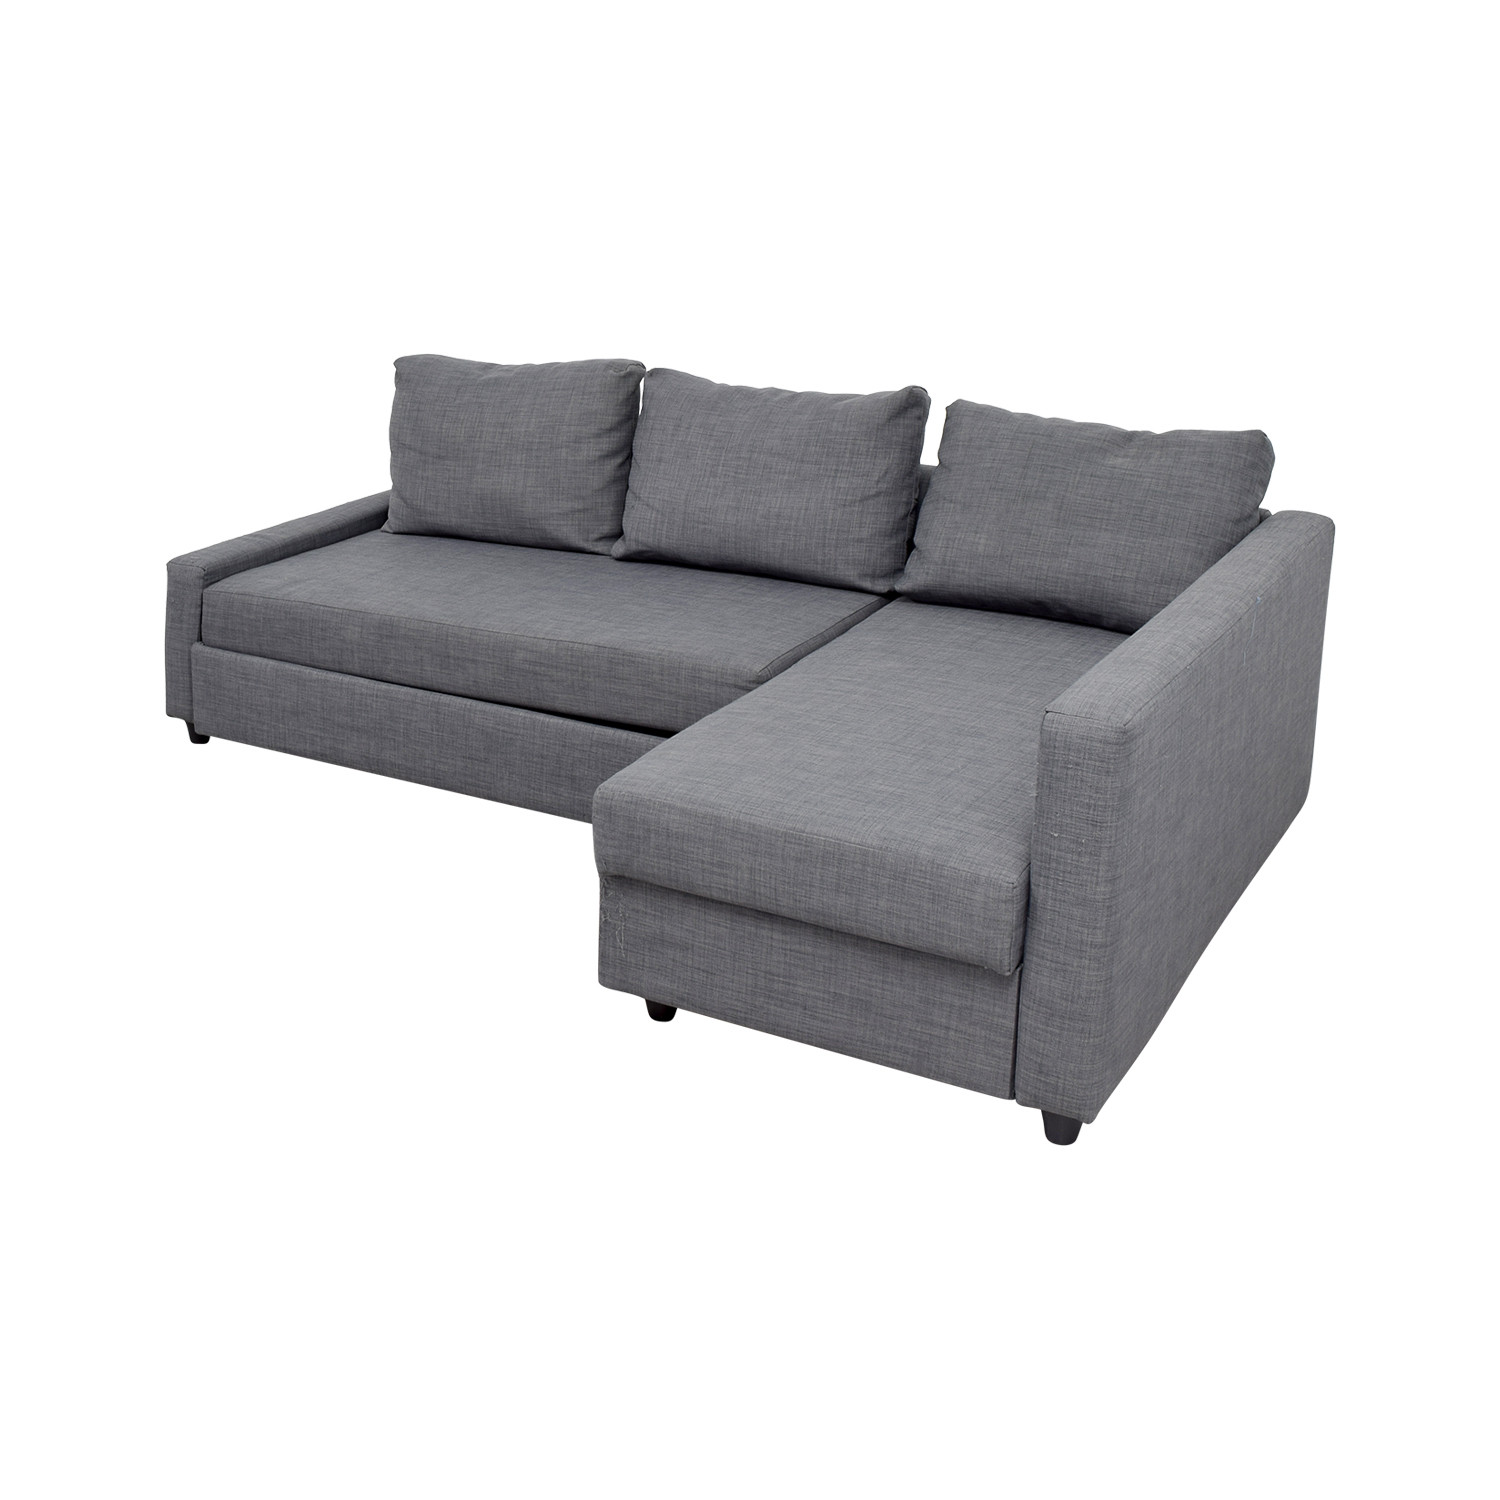 Best ideas about Ikea Sectional Sofa . Save or Pin OFF IKEA IKEA Grey Sleeper Chaise Sectional Sofas Now.